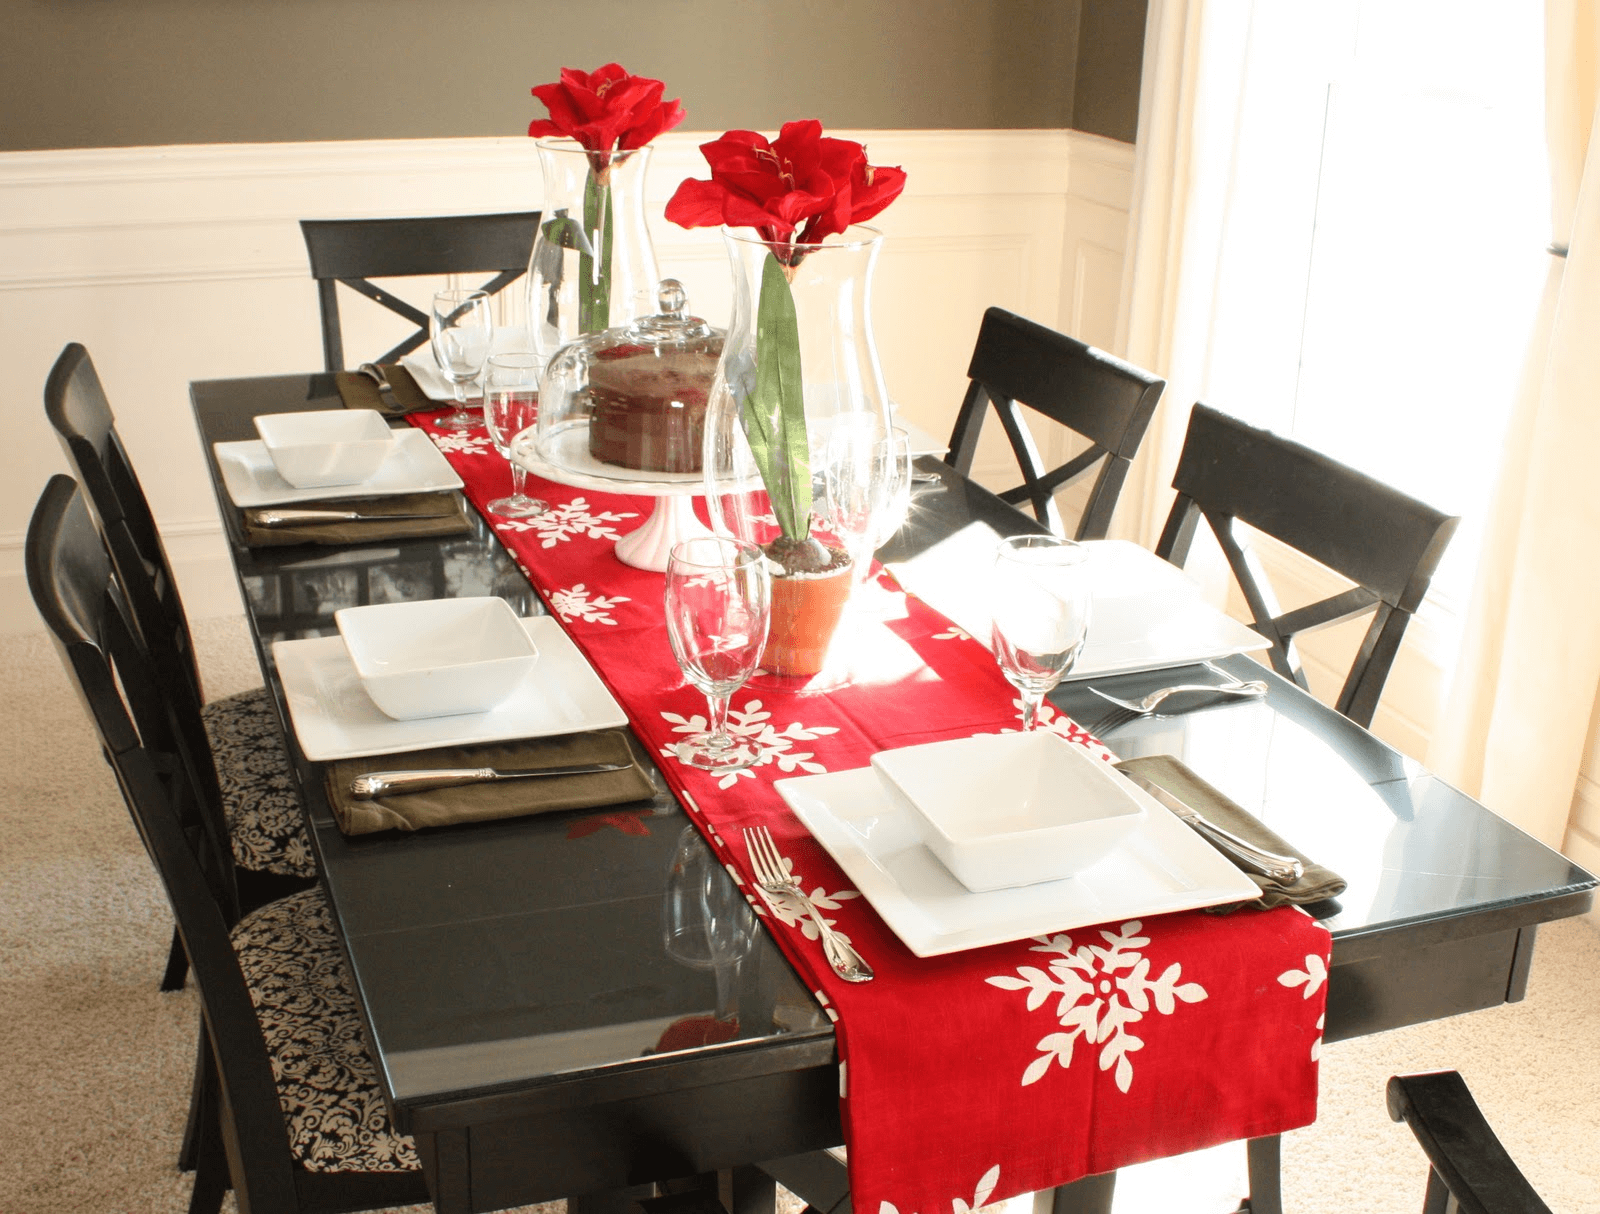 How to decorate dining table for valentine make a